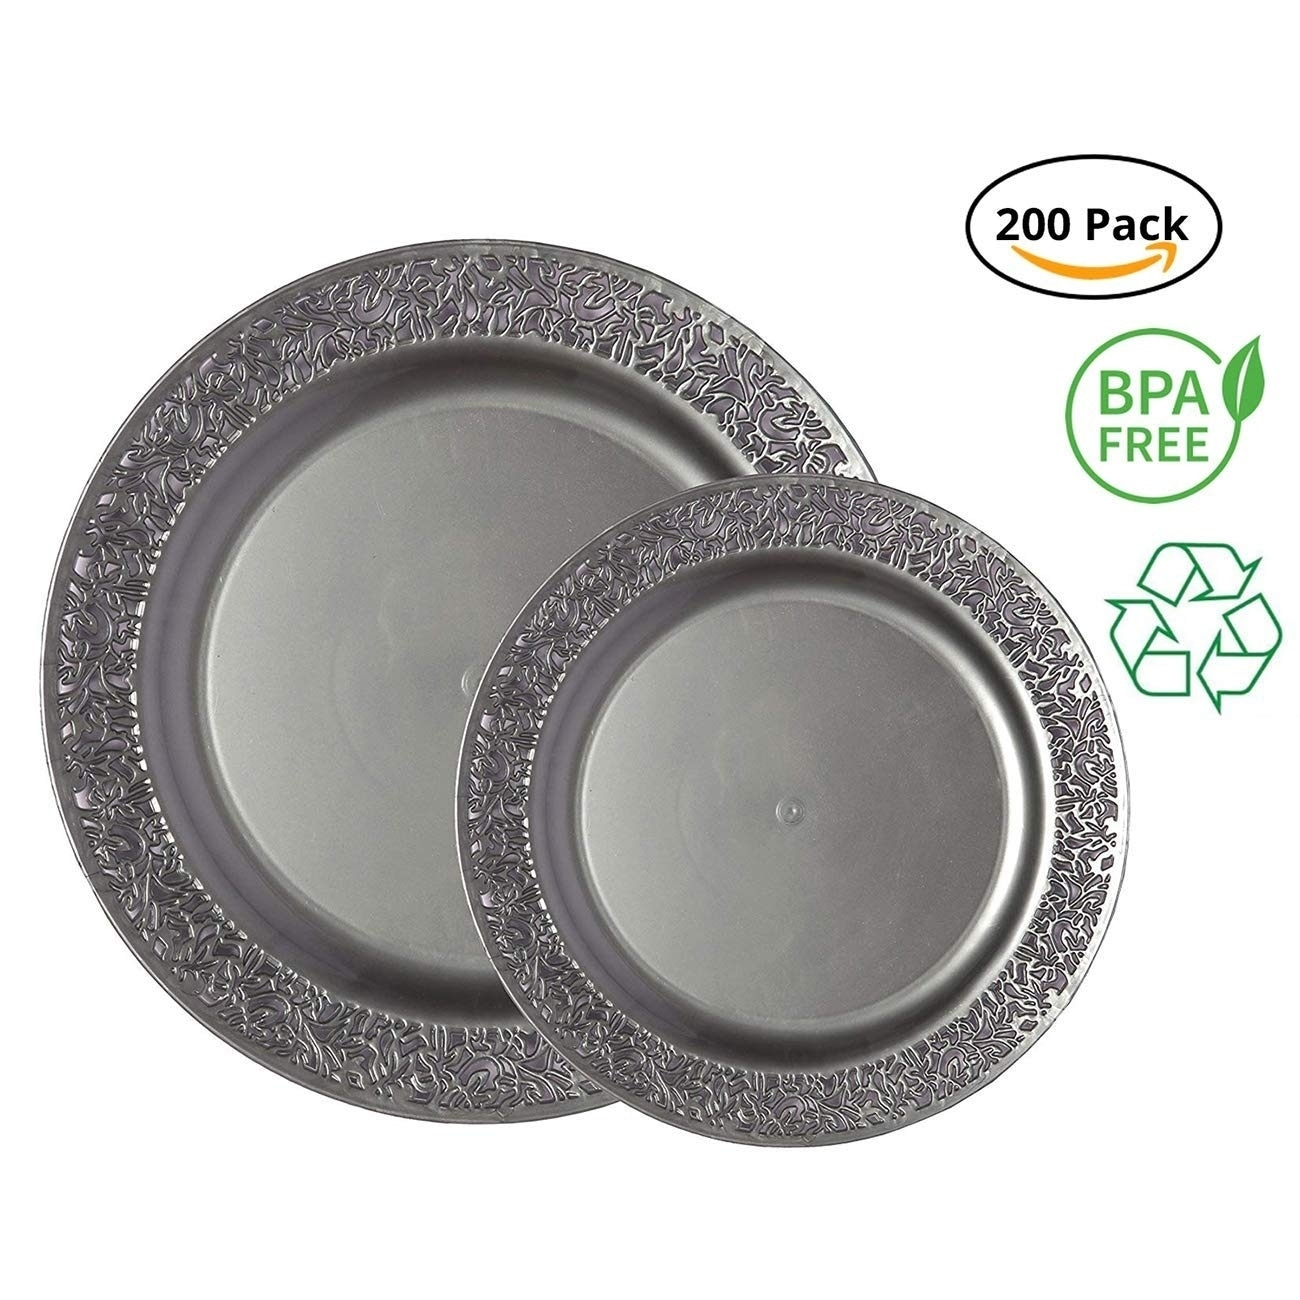 100 High Quality Strong Disposable Plastic Plates Microwave Safe 7/'/' WHITE Plate